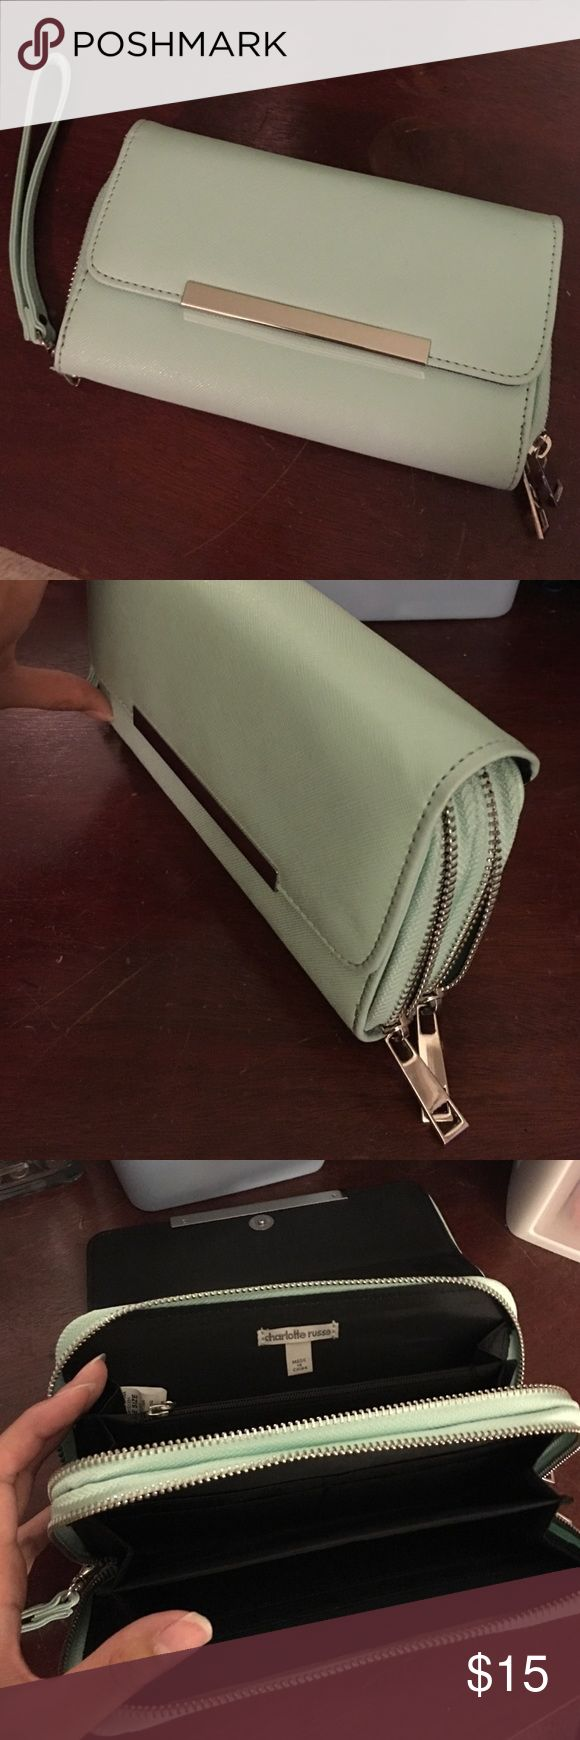 Pretty Mint Wallet Wristlet Brand new condition NWOT. Plenty of room for cash, cards, receipts/coupons, ect... and zipper pocket for coins. Detachable wristlet. Charlotte Russe Bags Wallets